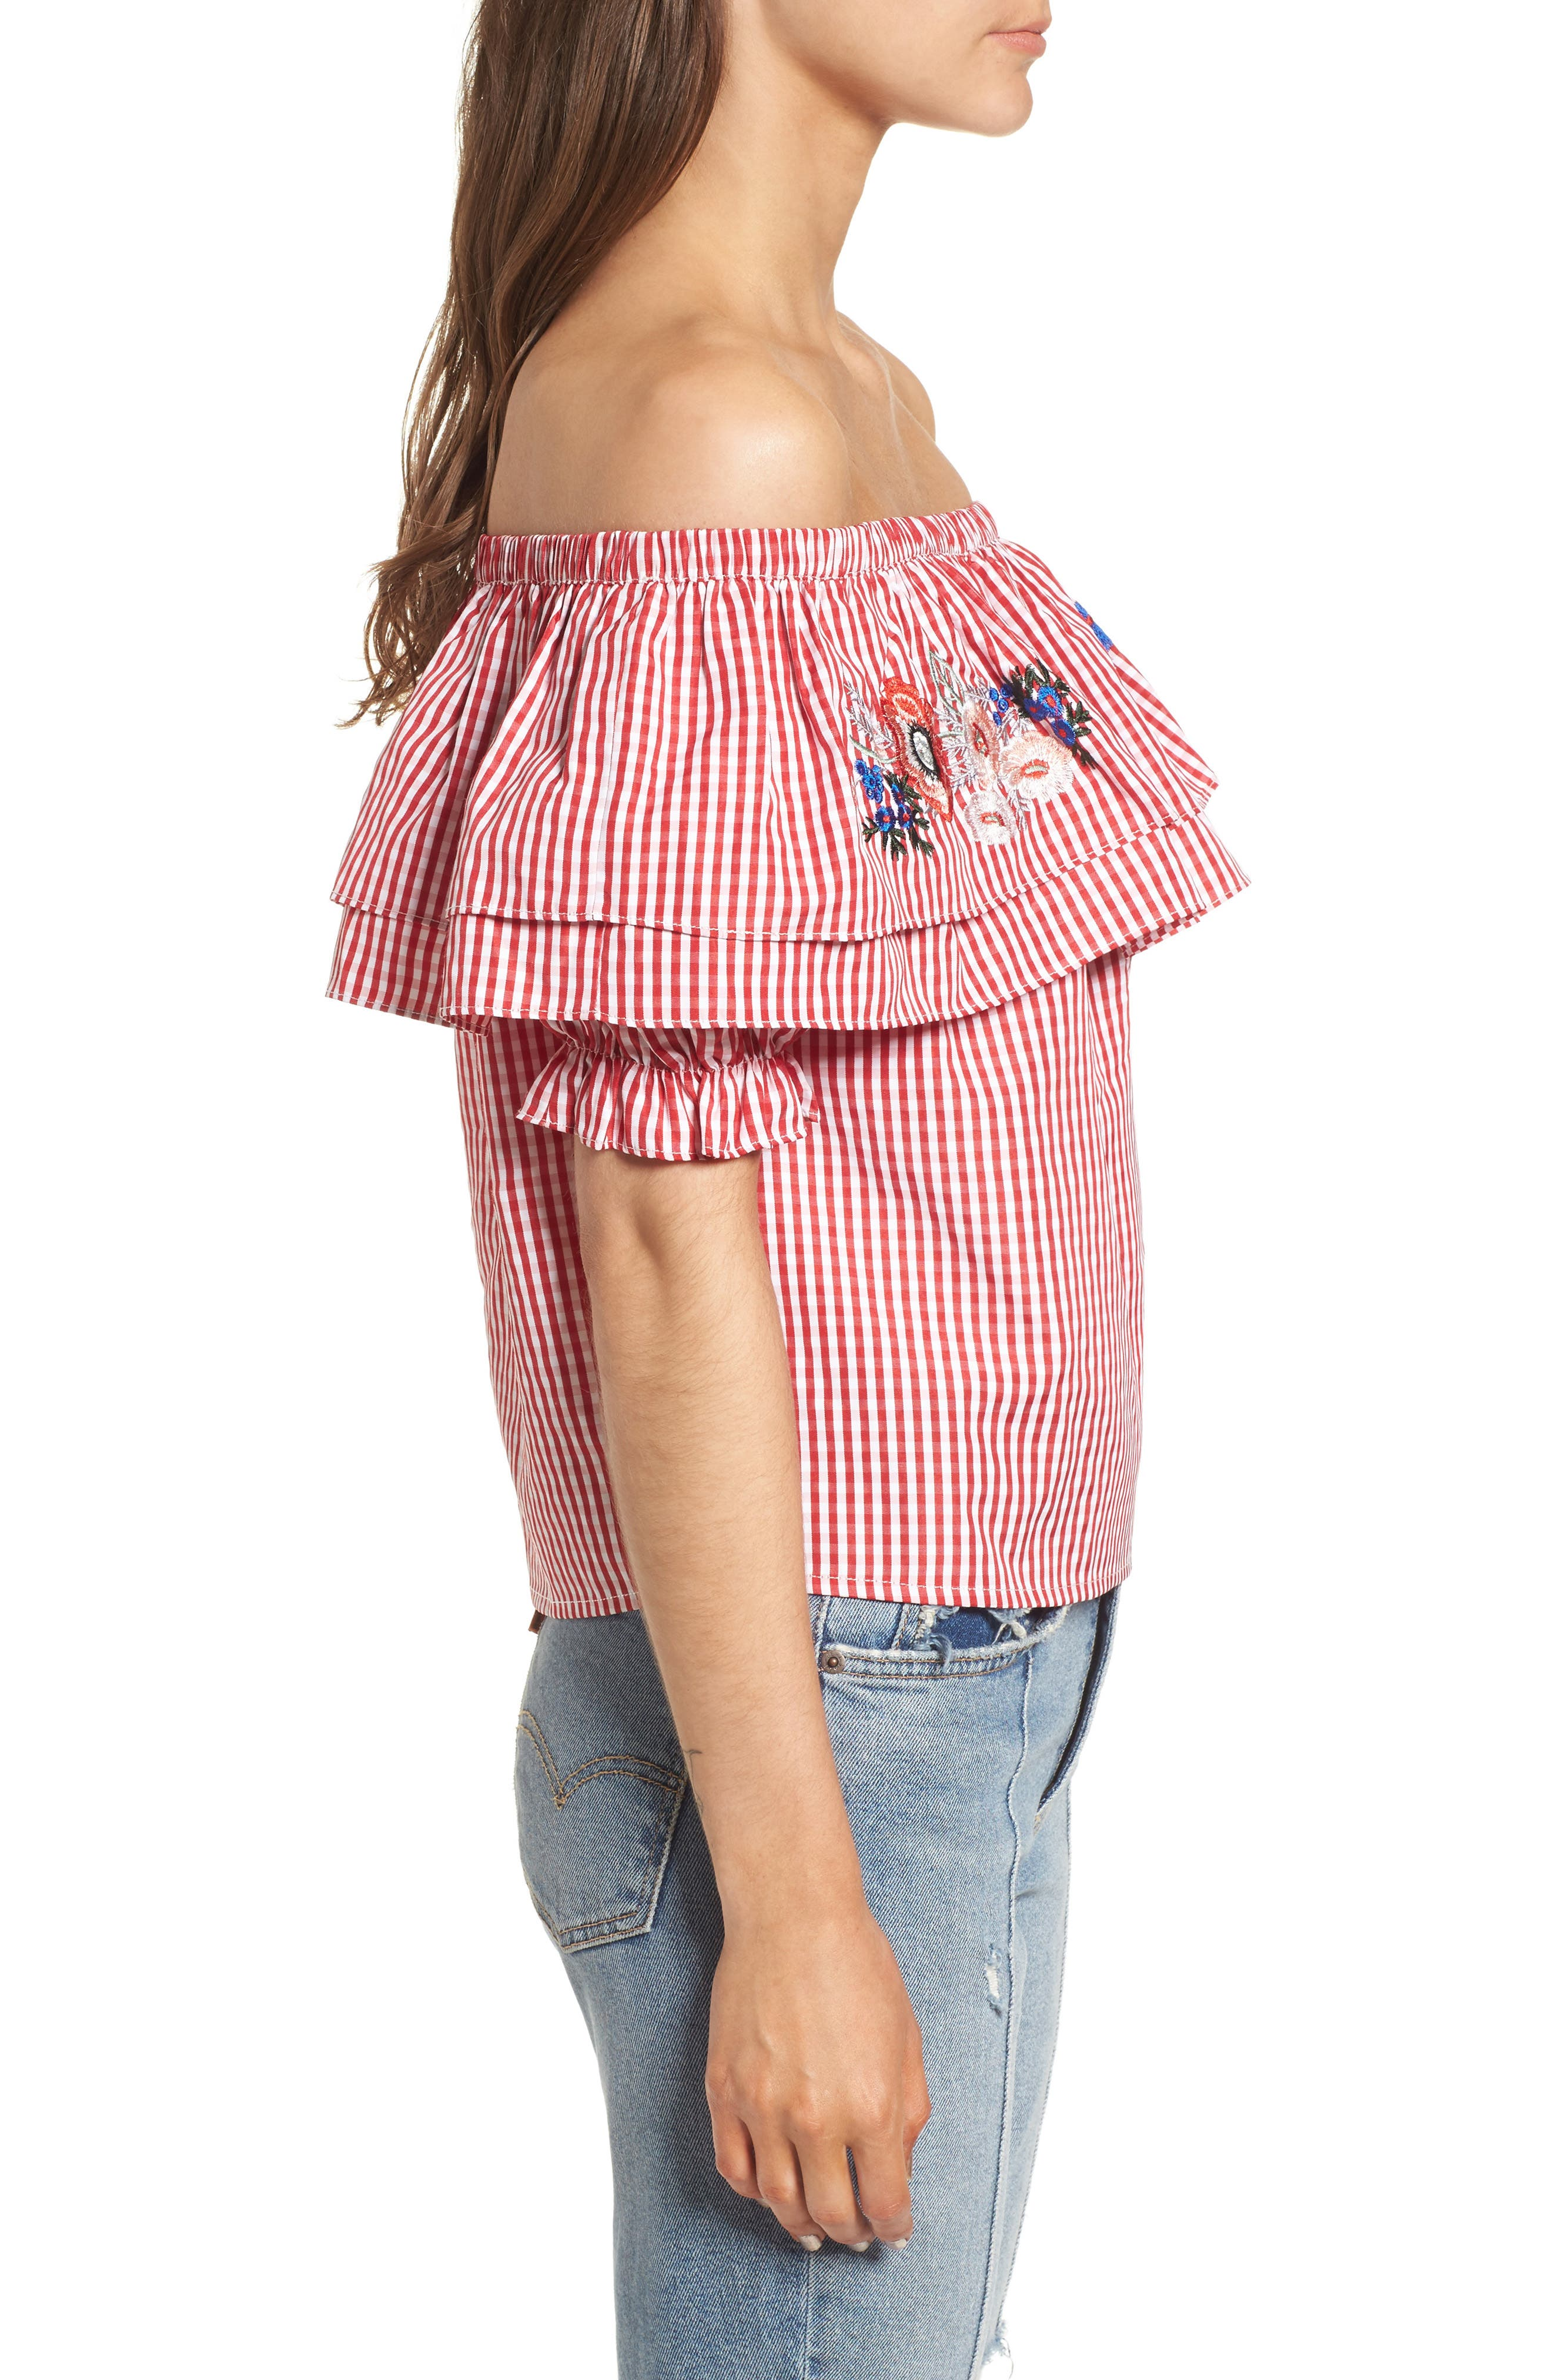 LOST + WANDER, Embroidered Gingham Off the Shoulder Top, Alternate thumbnail 3, color, 640